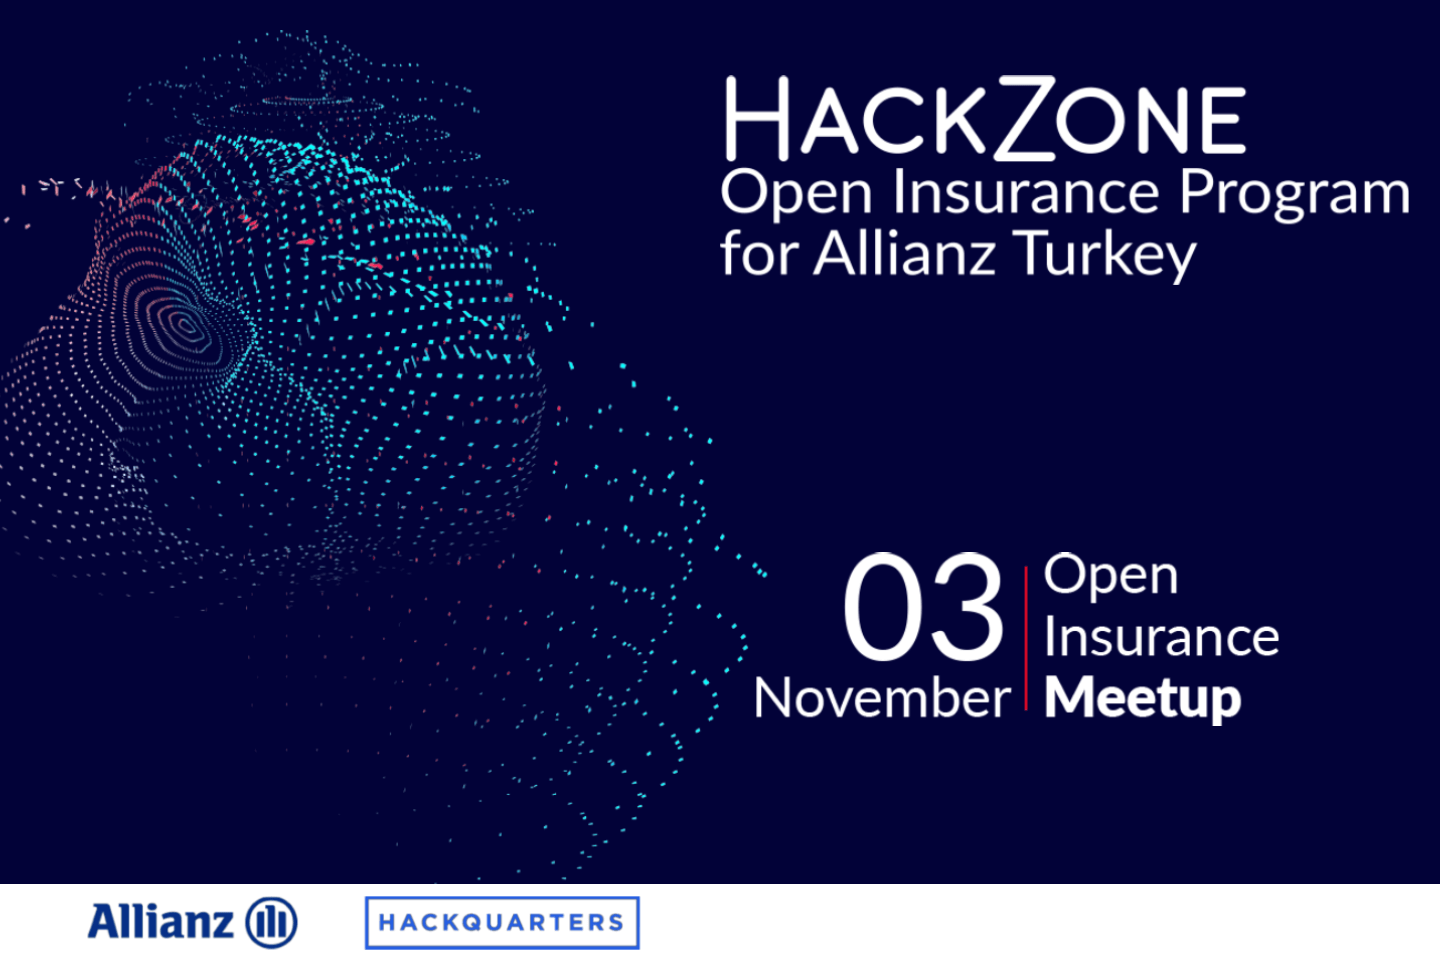 Open Insurance Meetup is an online event aiming to empower more innovation in Insurance Technology, raising awareness and building strong eco-system of InsurTech startups,entrepreneurs, specialists an